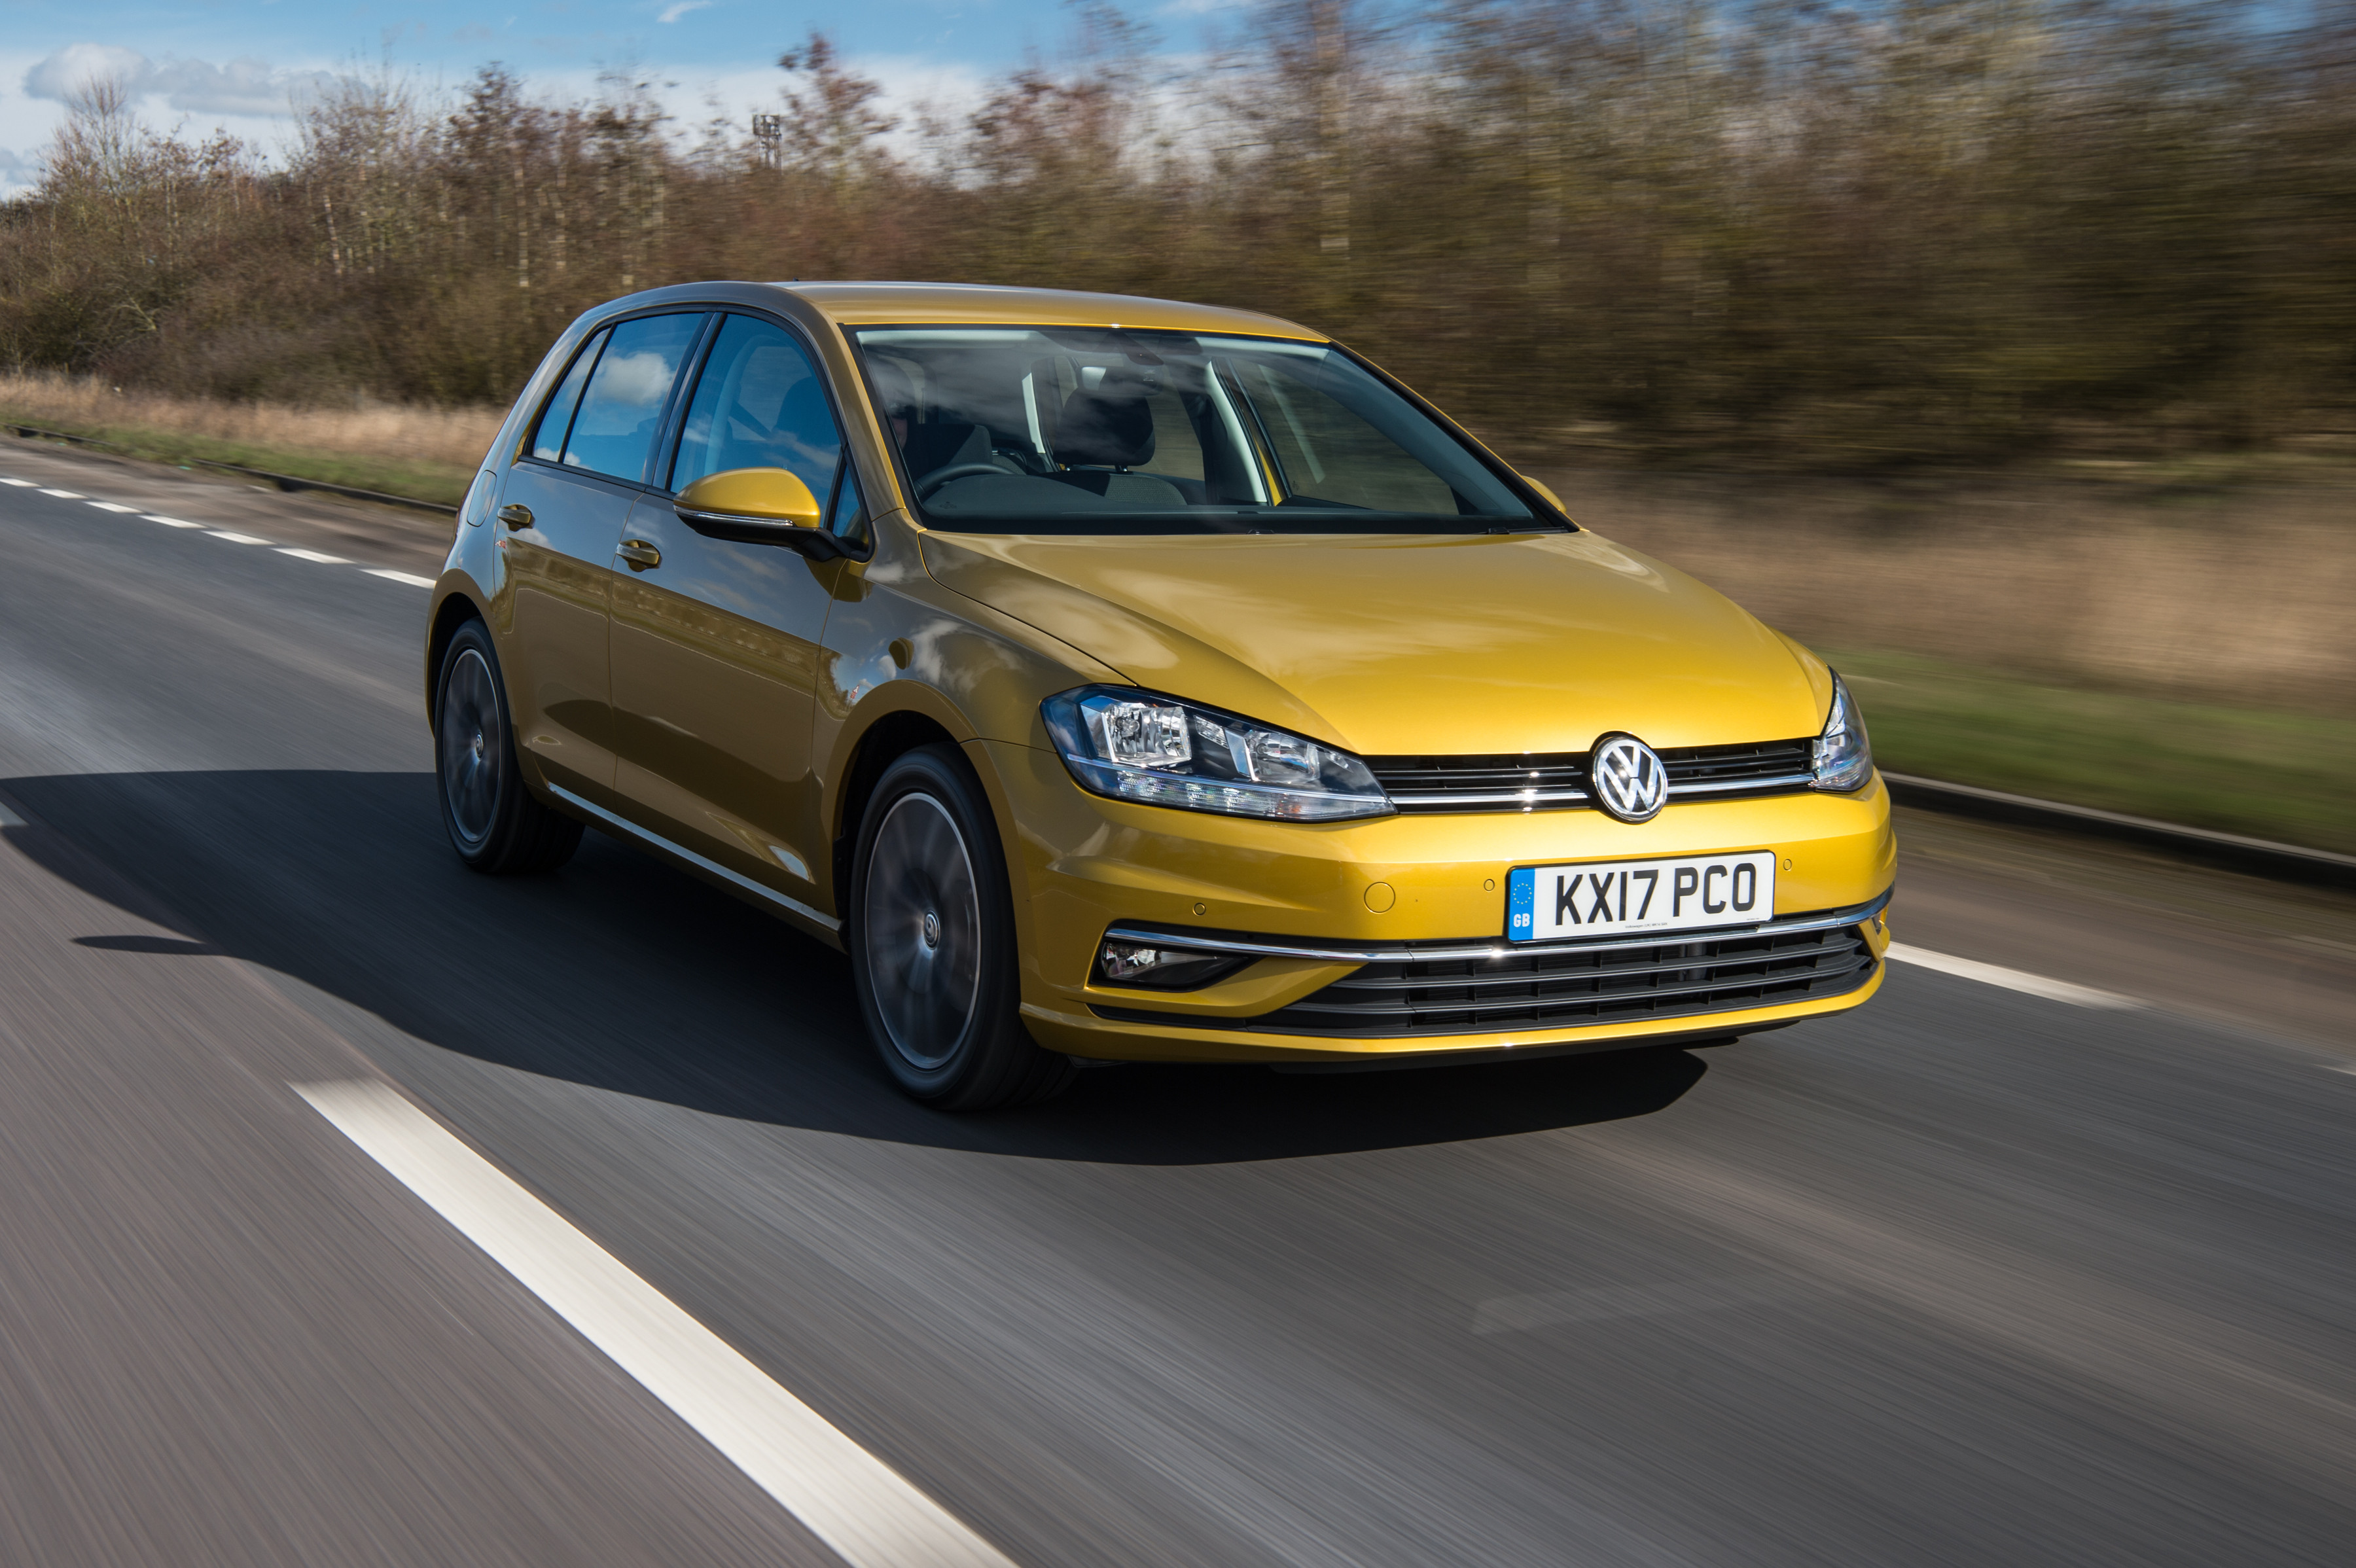 Gold metallic Volkswagen Golf driving towards you down the road